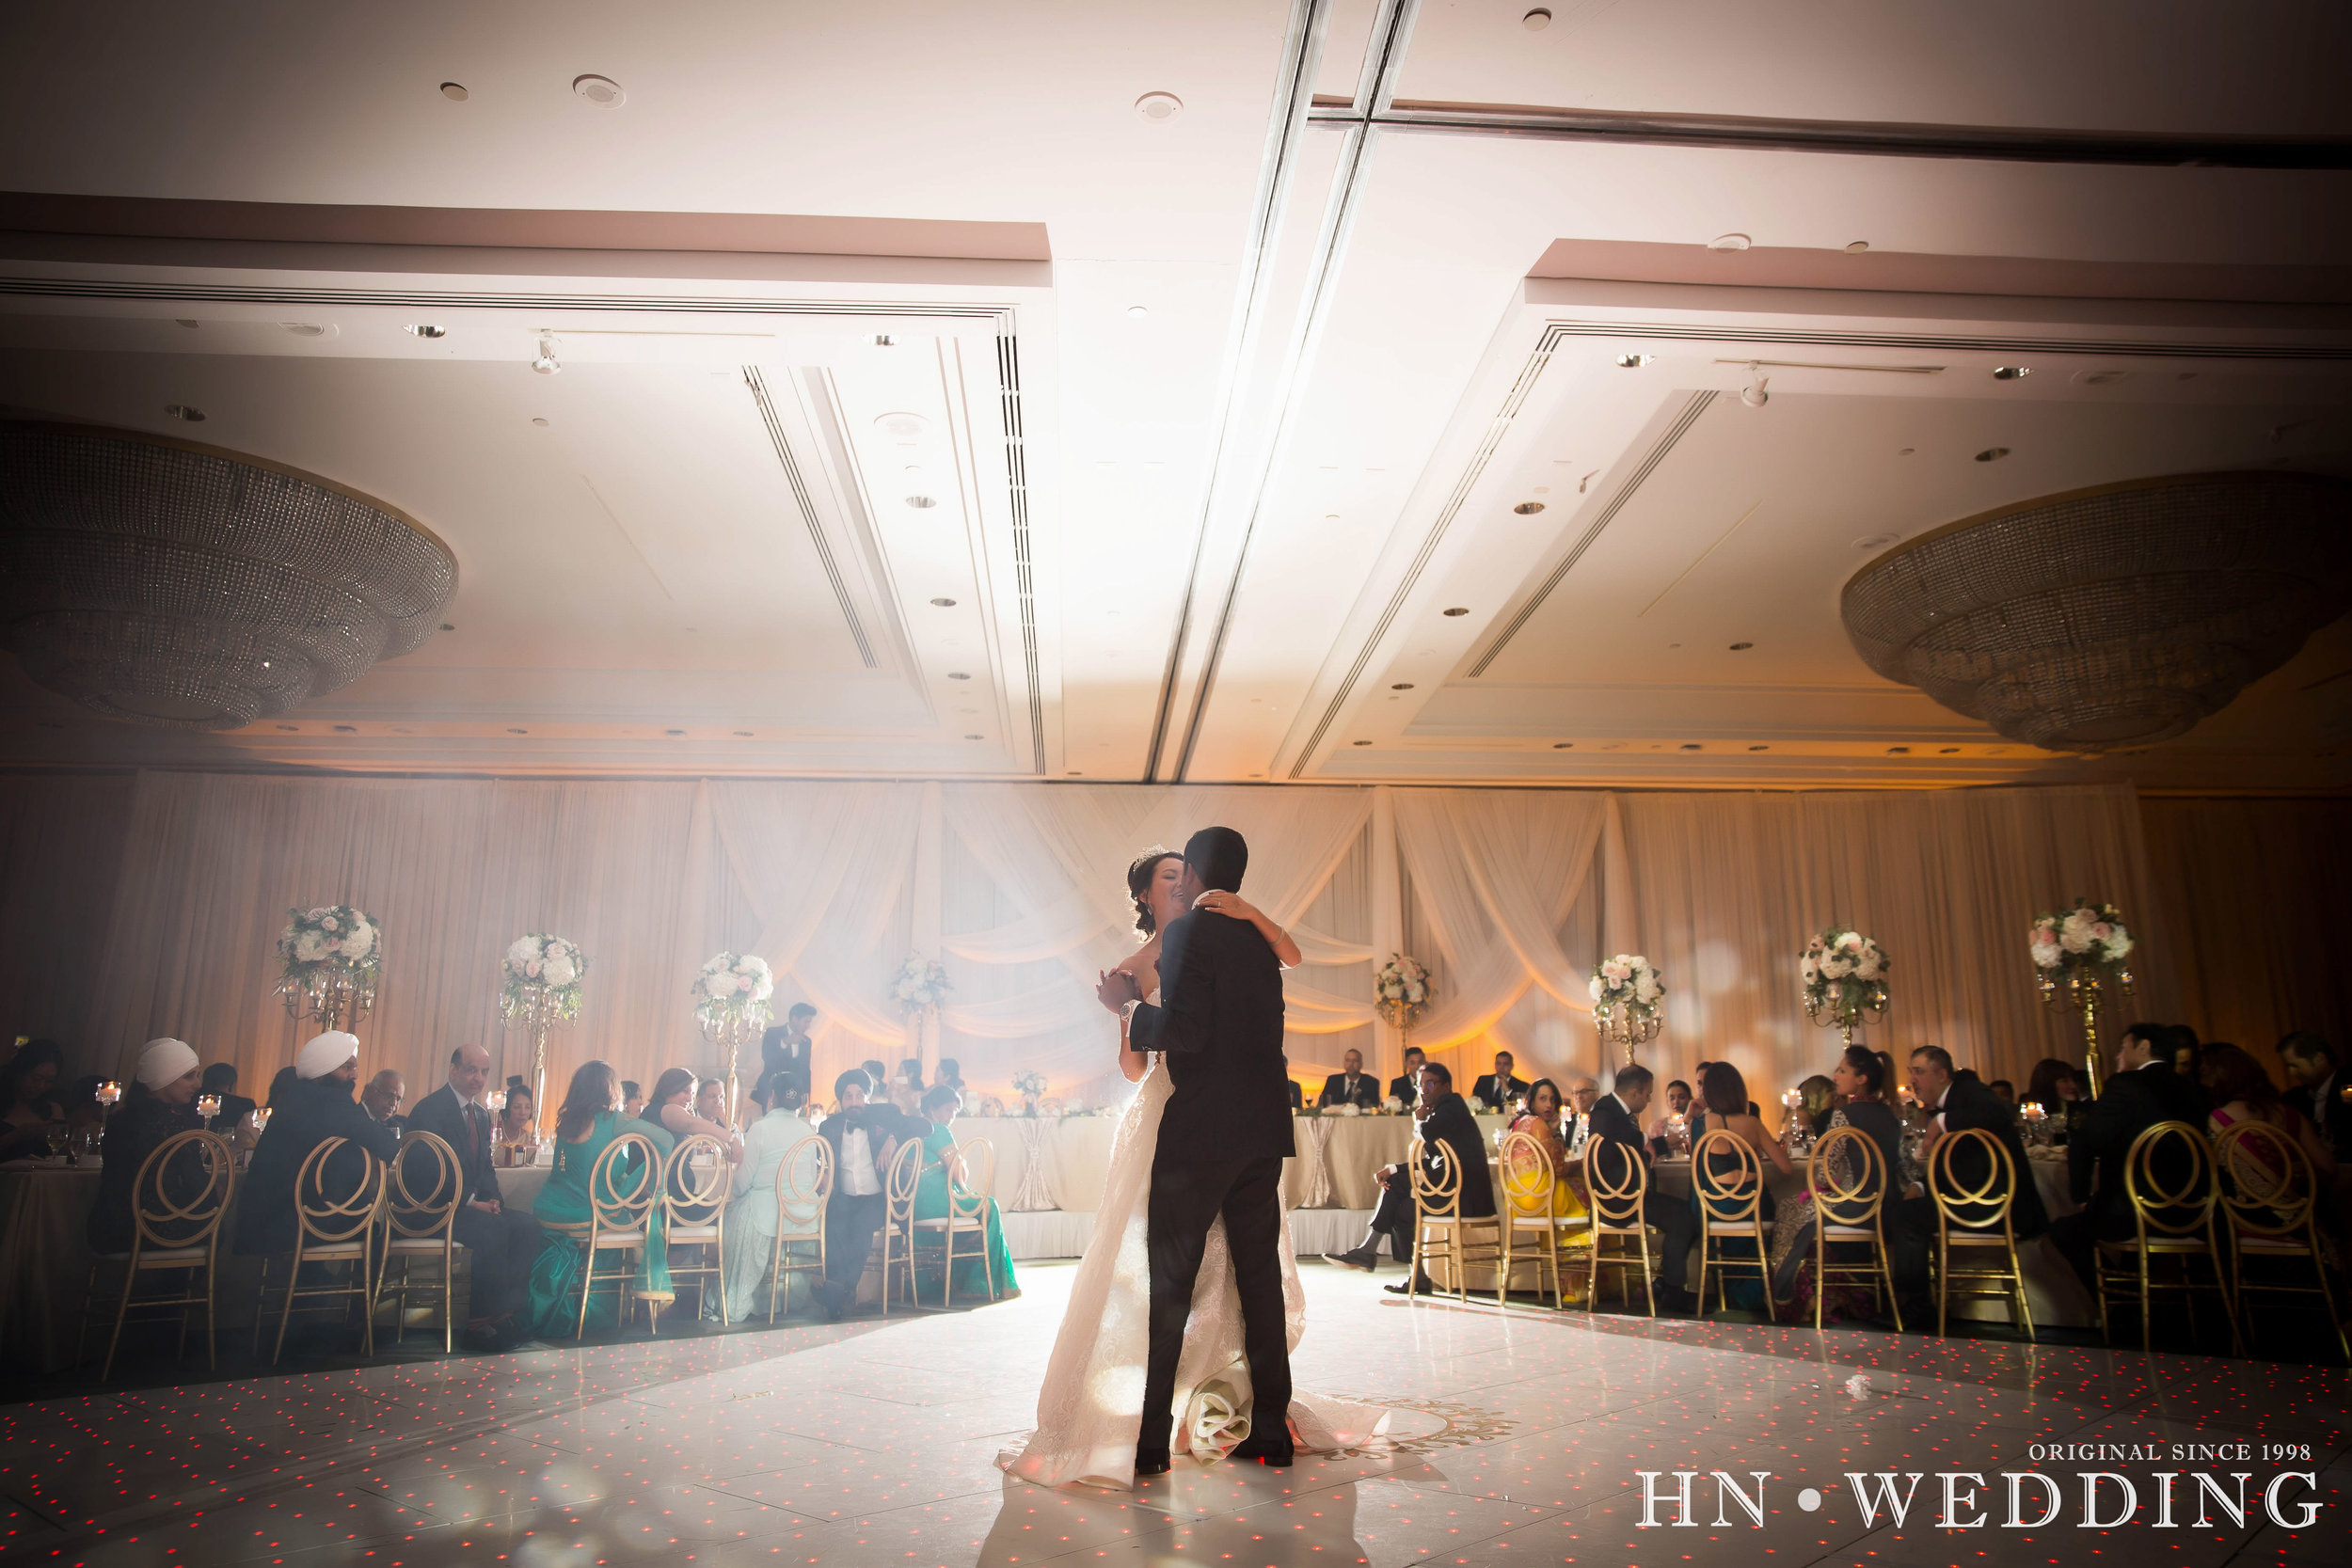 HNwedding20170918weddingday-101.jpg